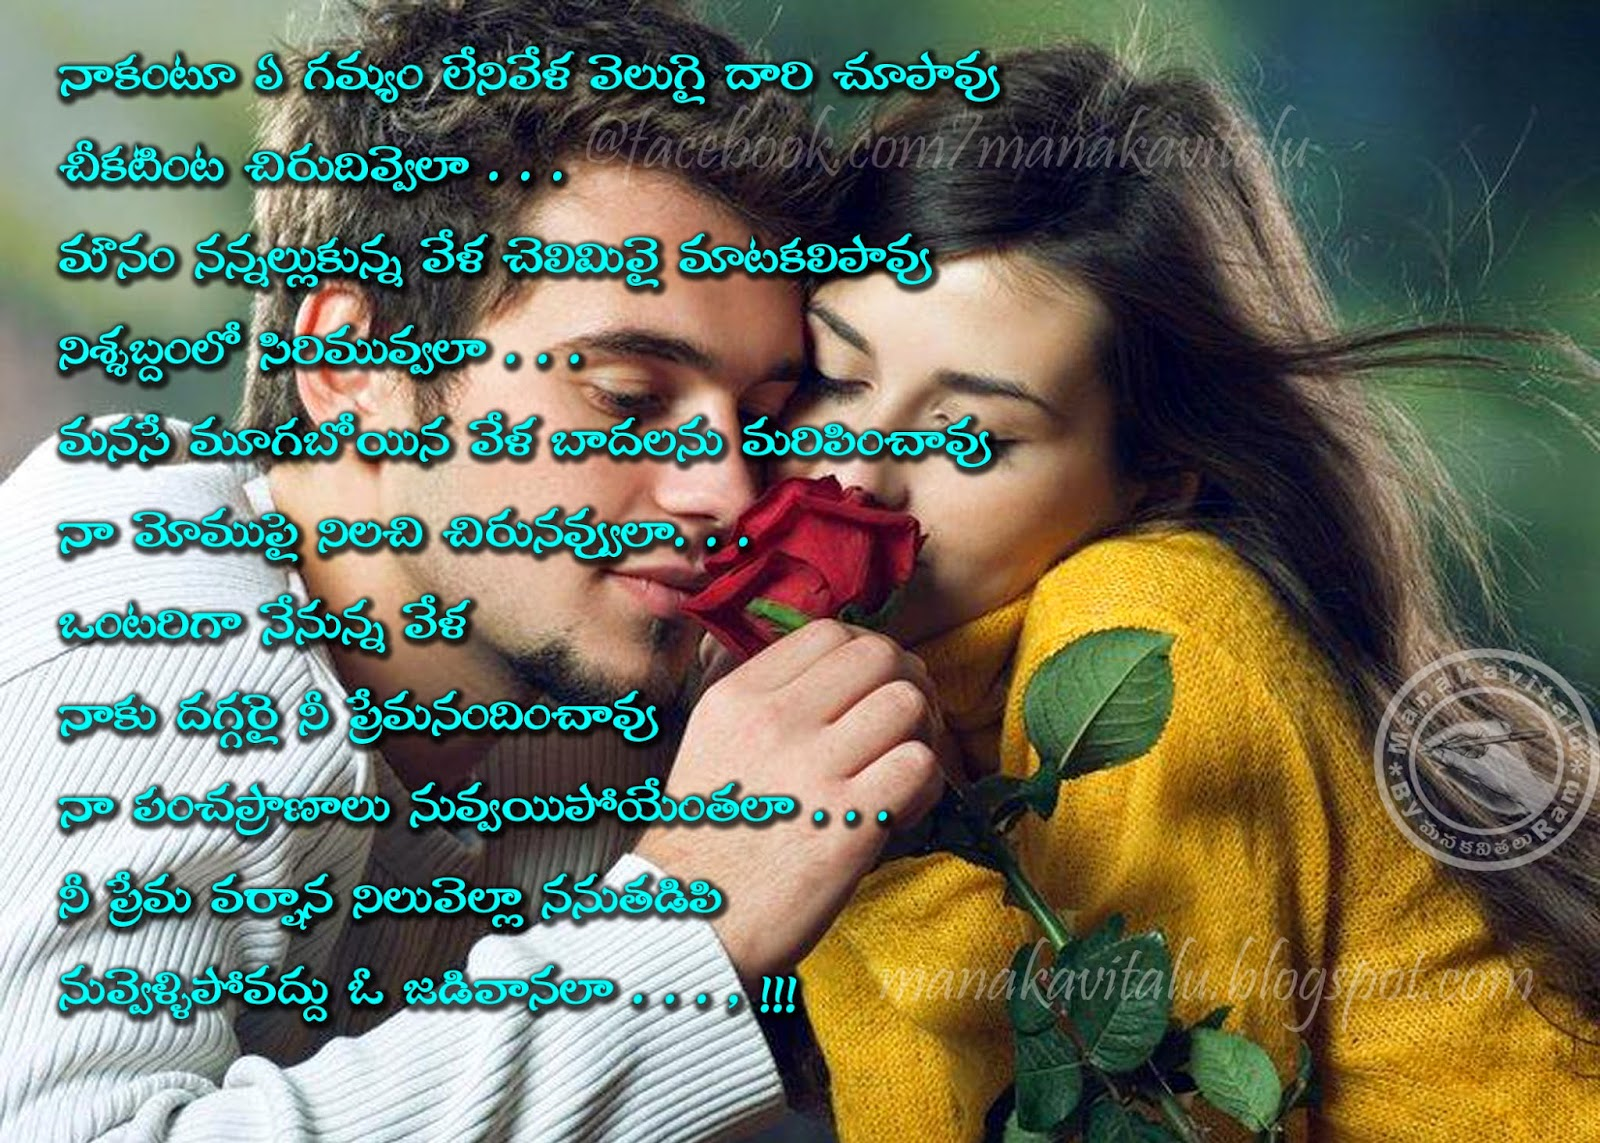 Telugu love quotes messages on images